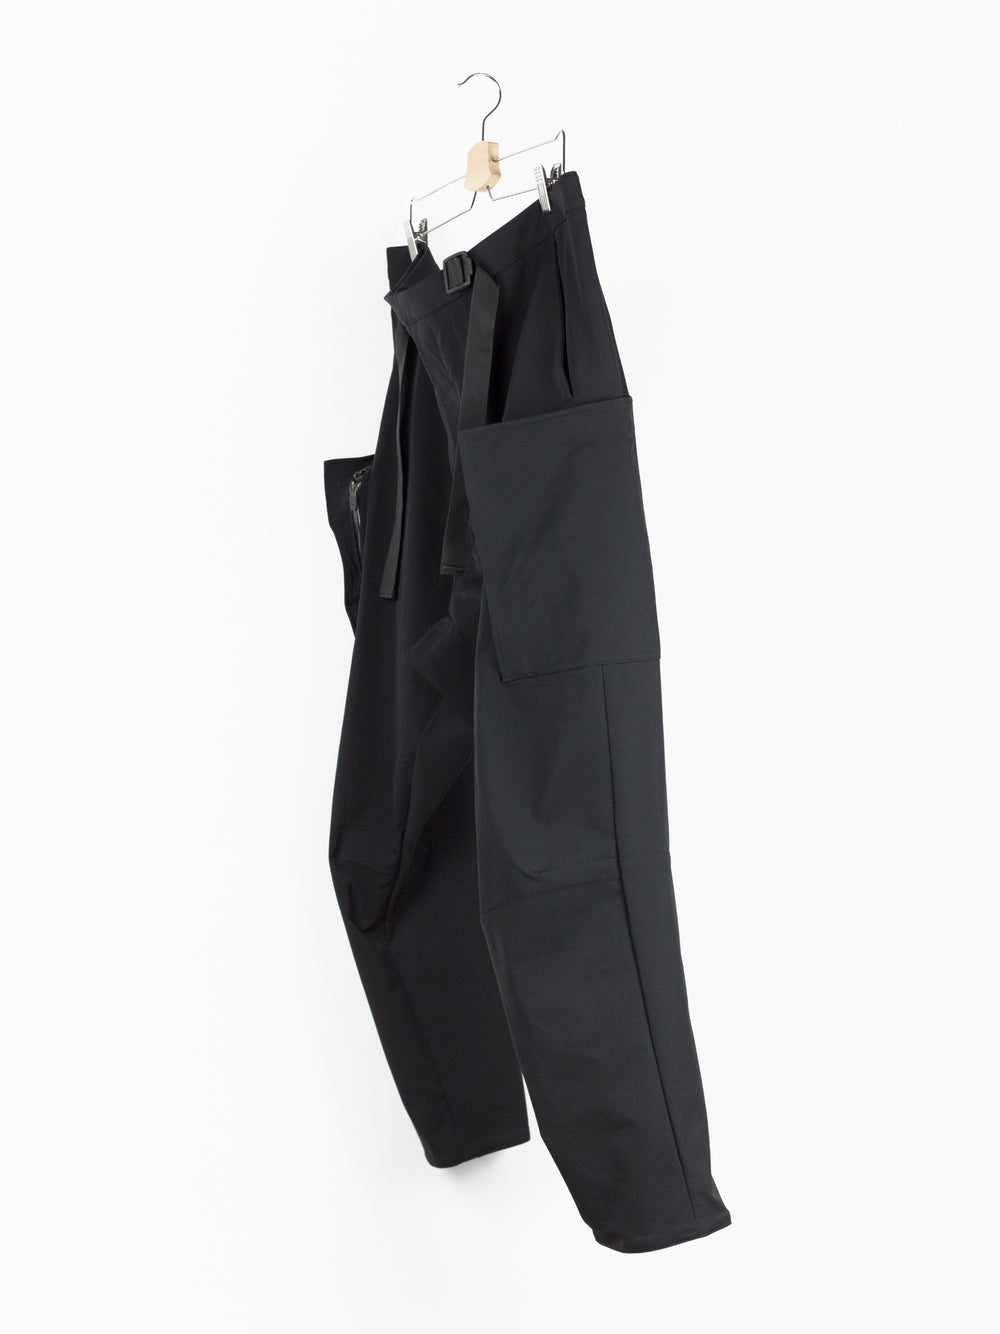 Acronym AW20 P31A-DS, Black